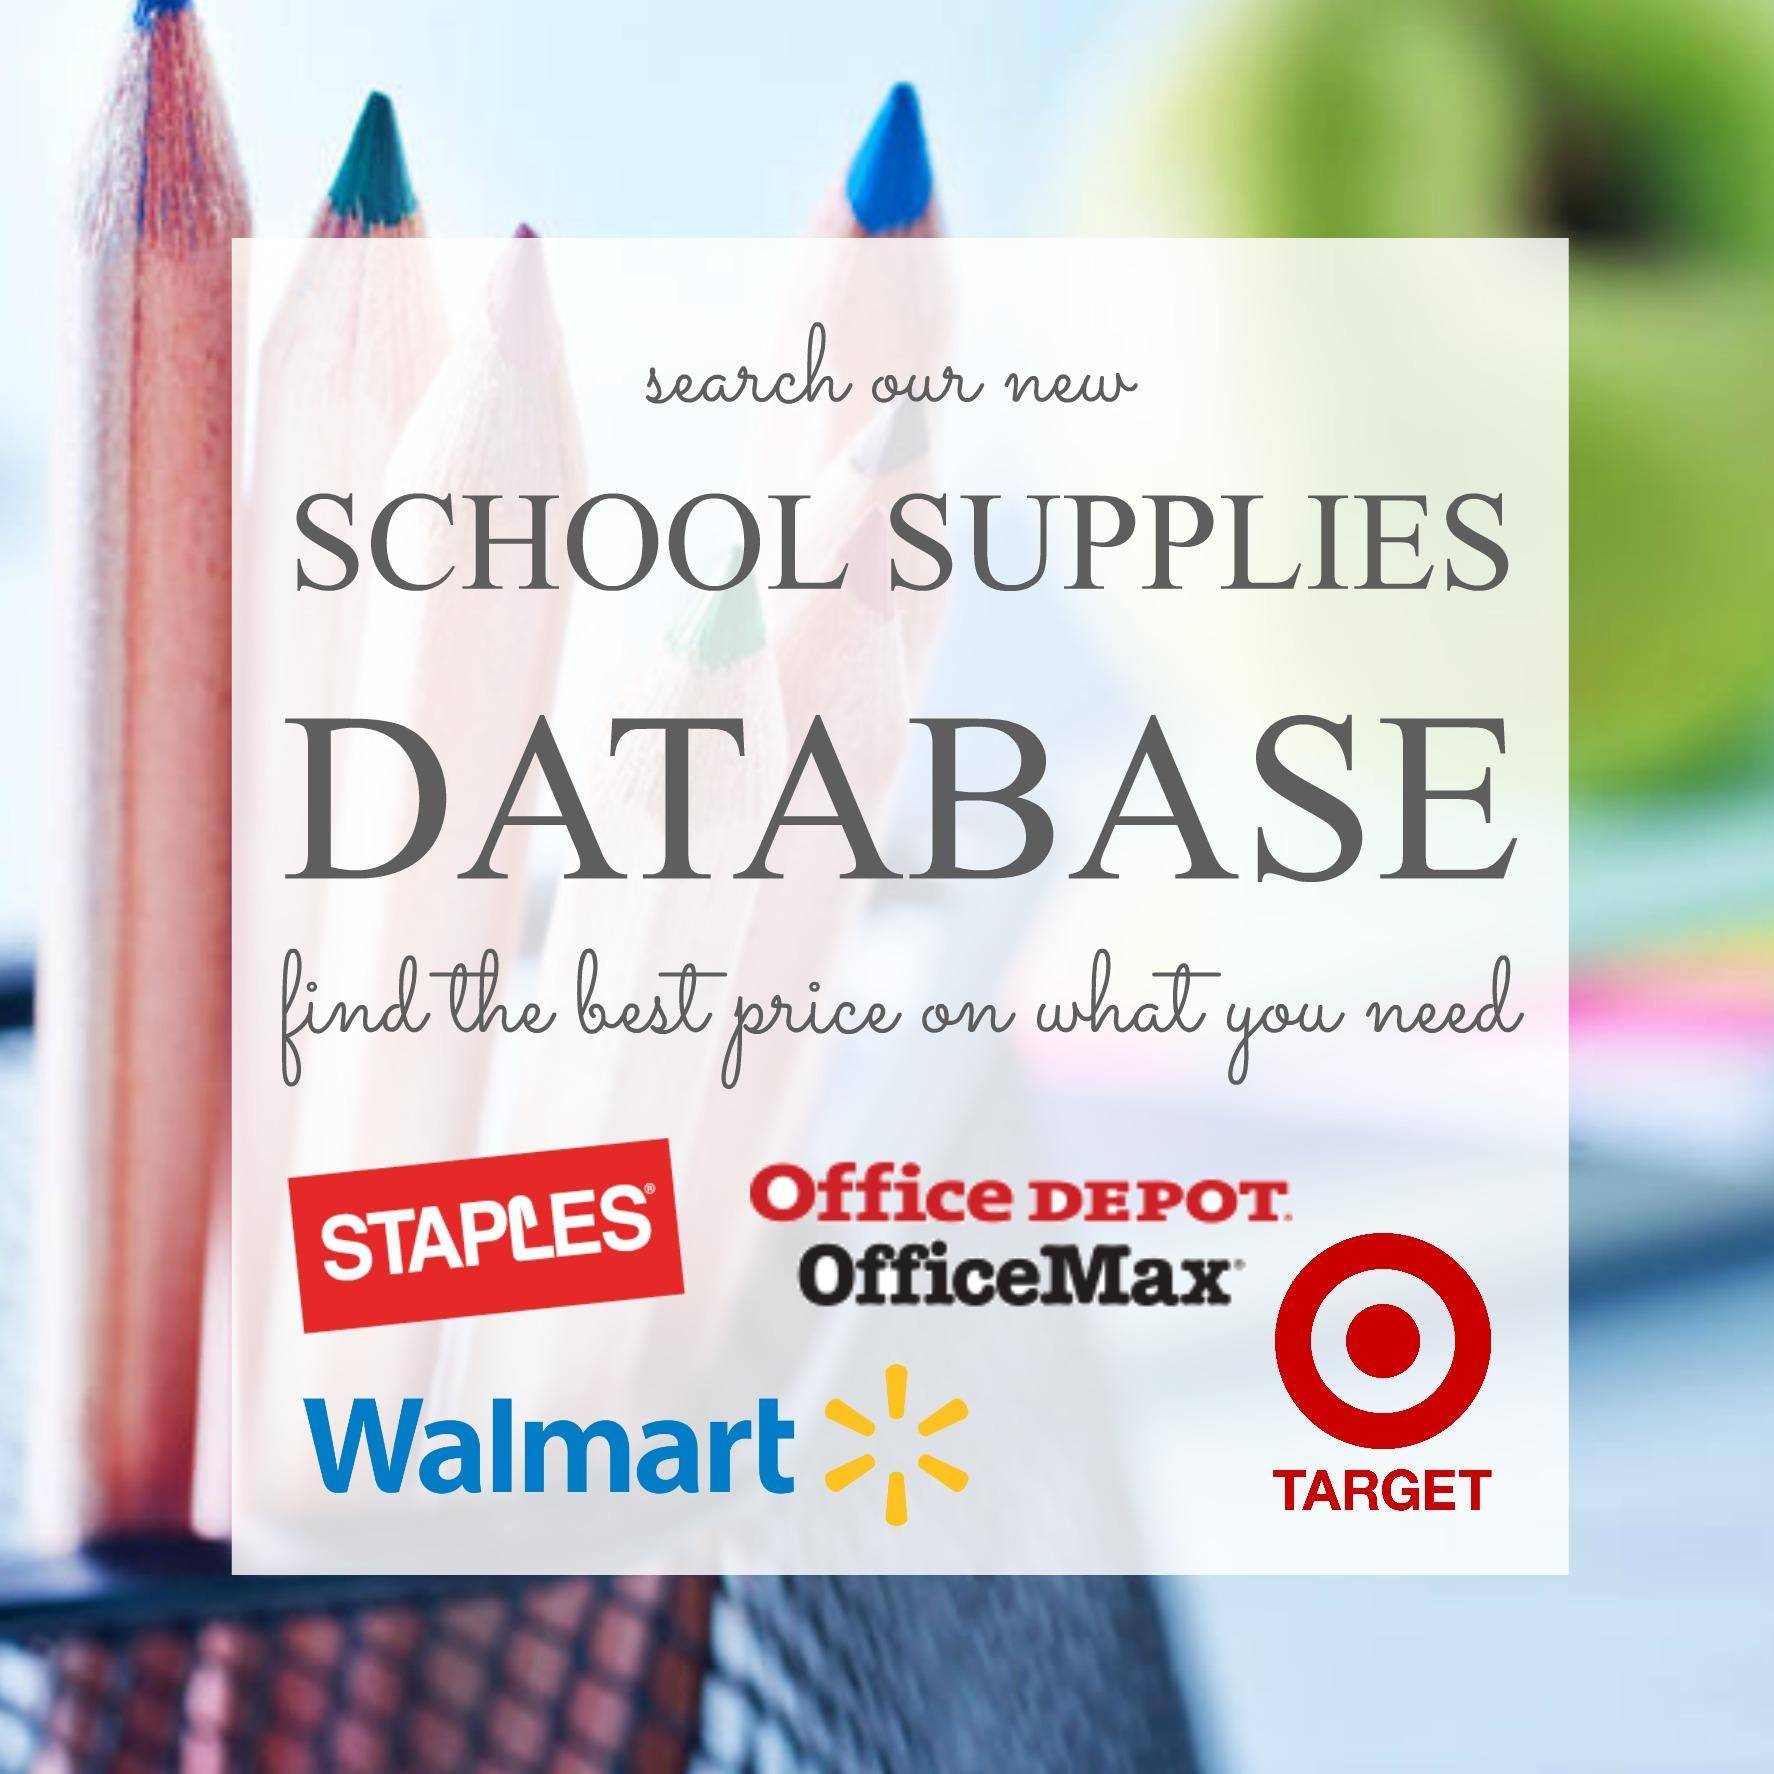 Back To School Supplies Price List 2018 - Free Printable Coupons For School Supplies At Walmart